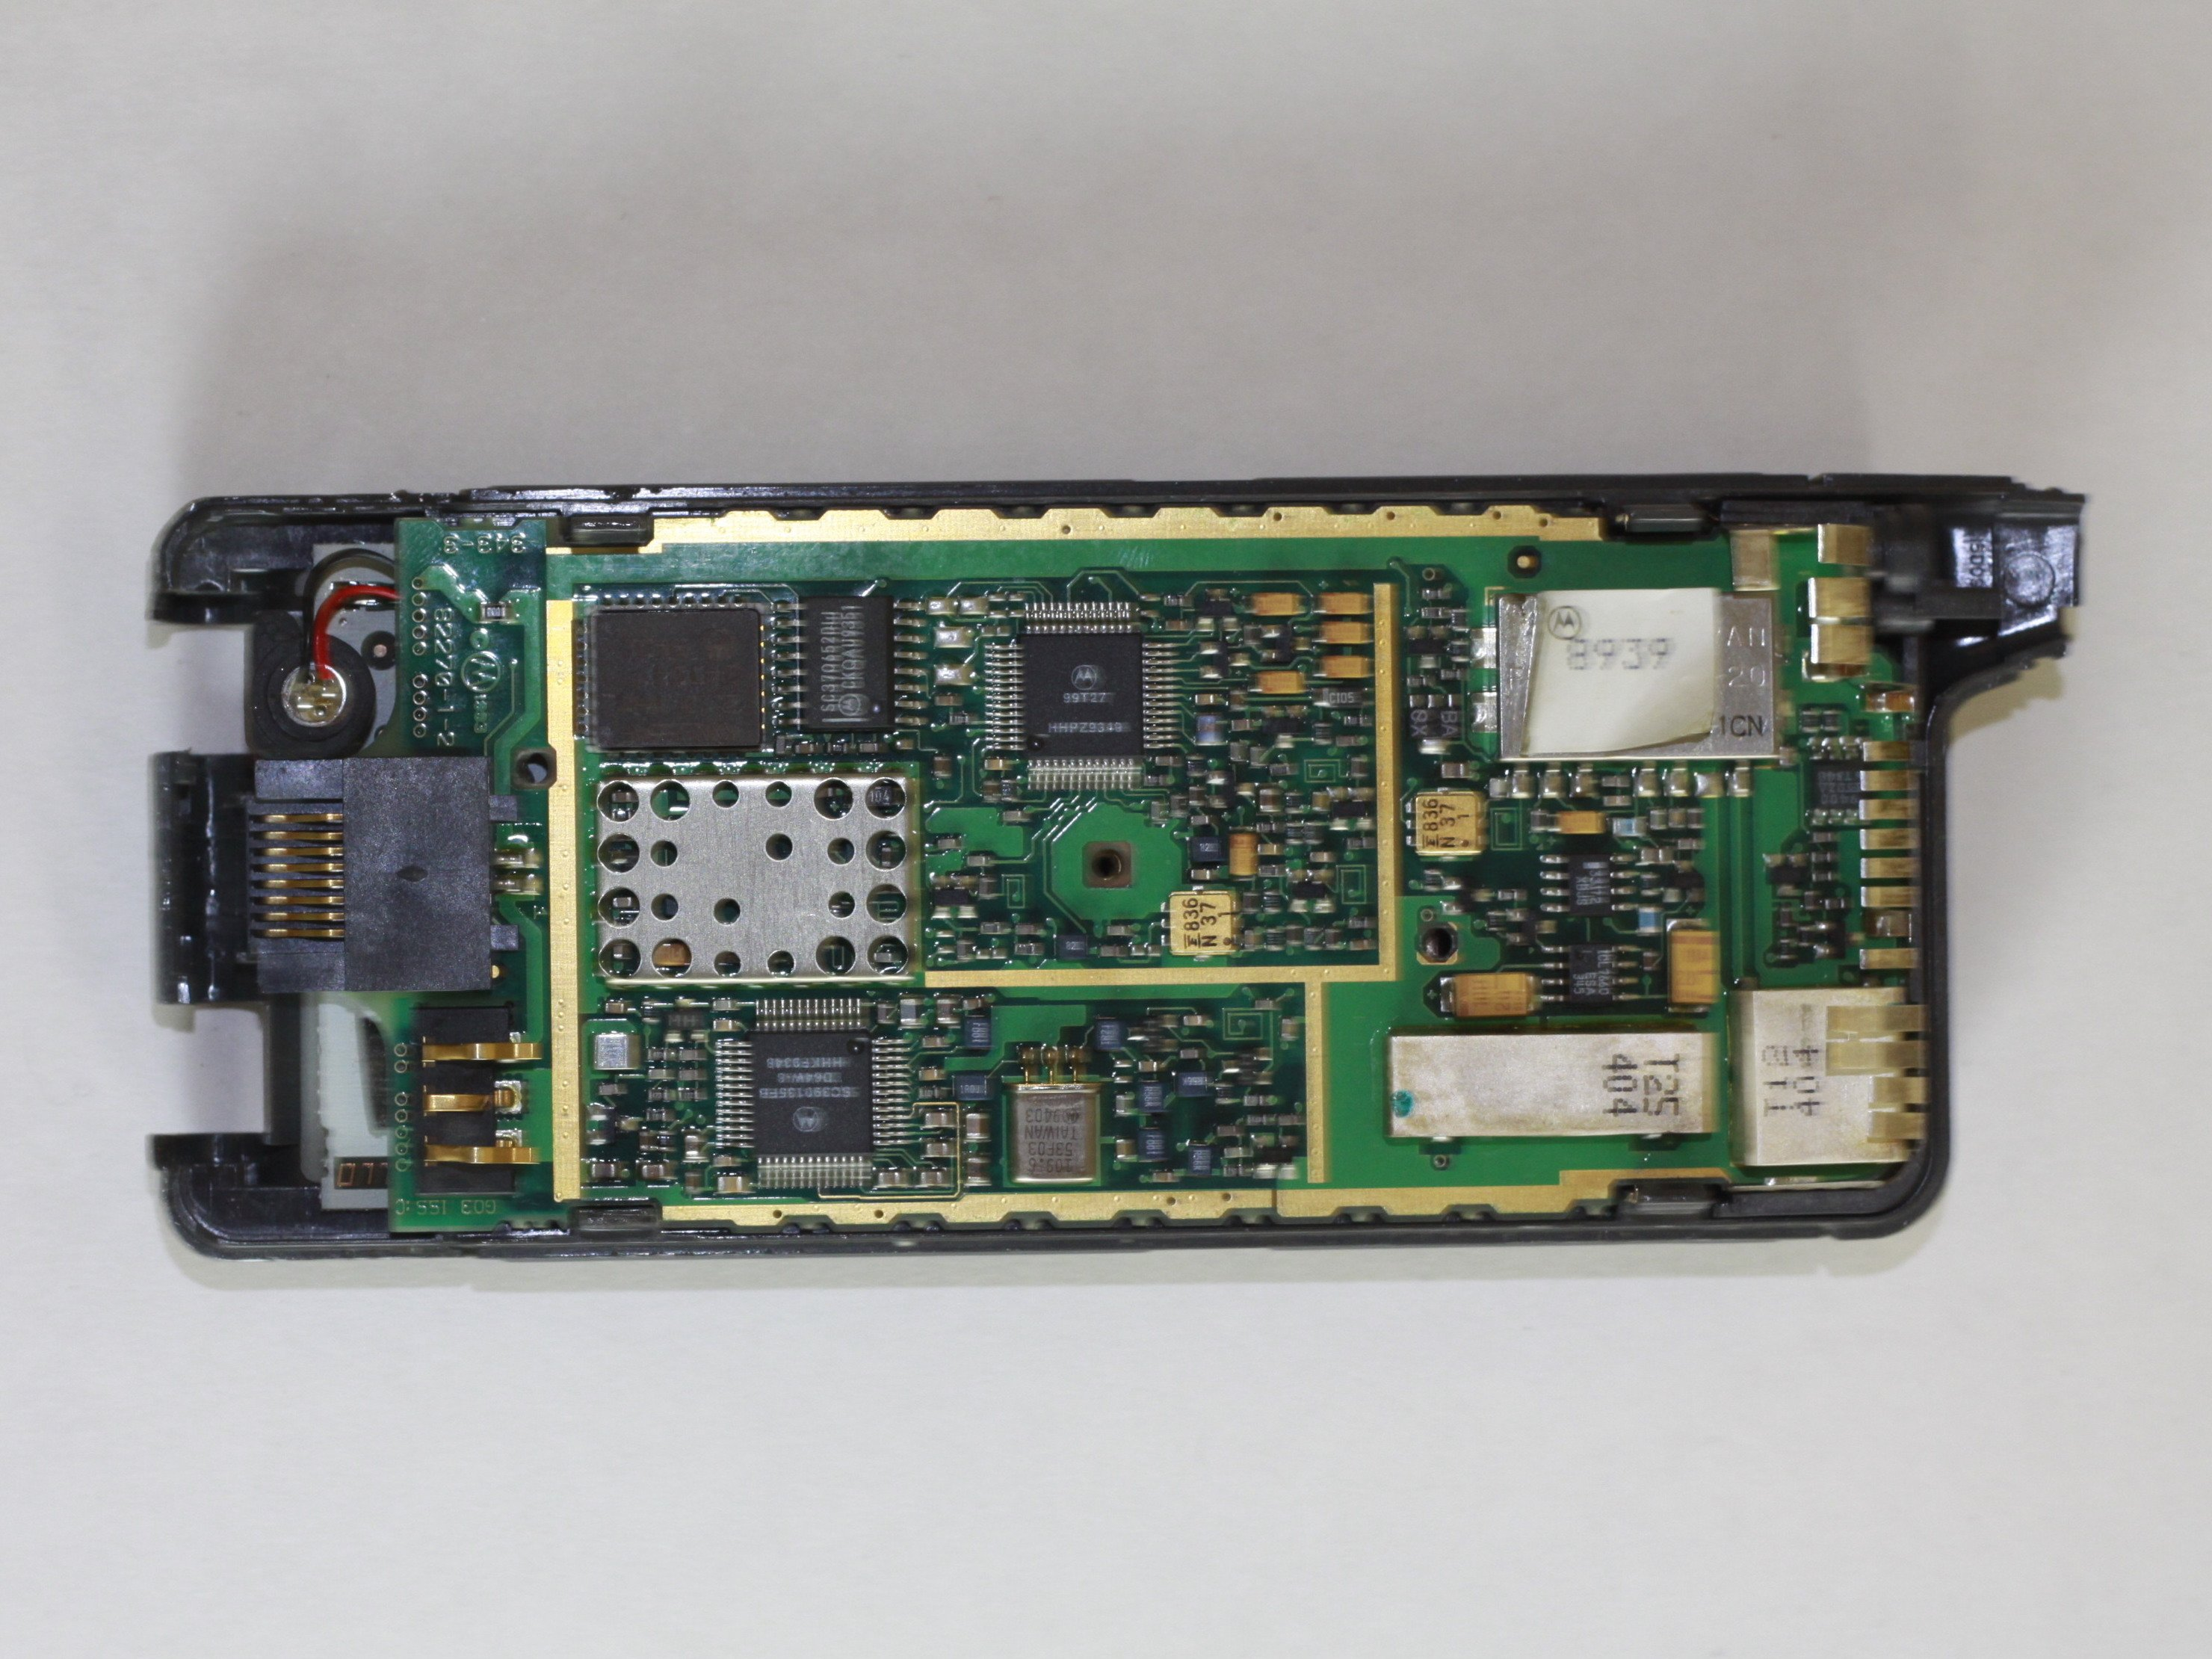 how to learn on what chipset the phone is assembled